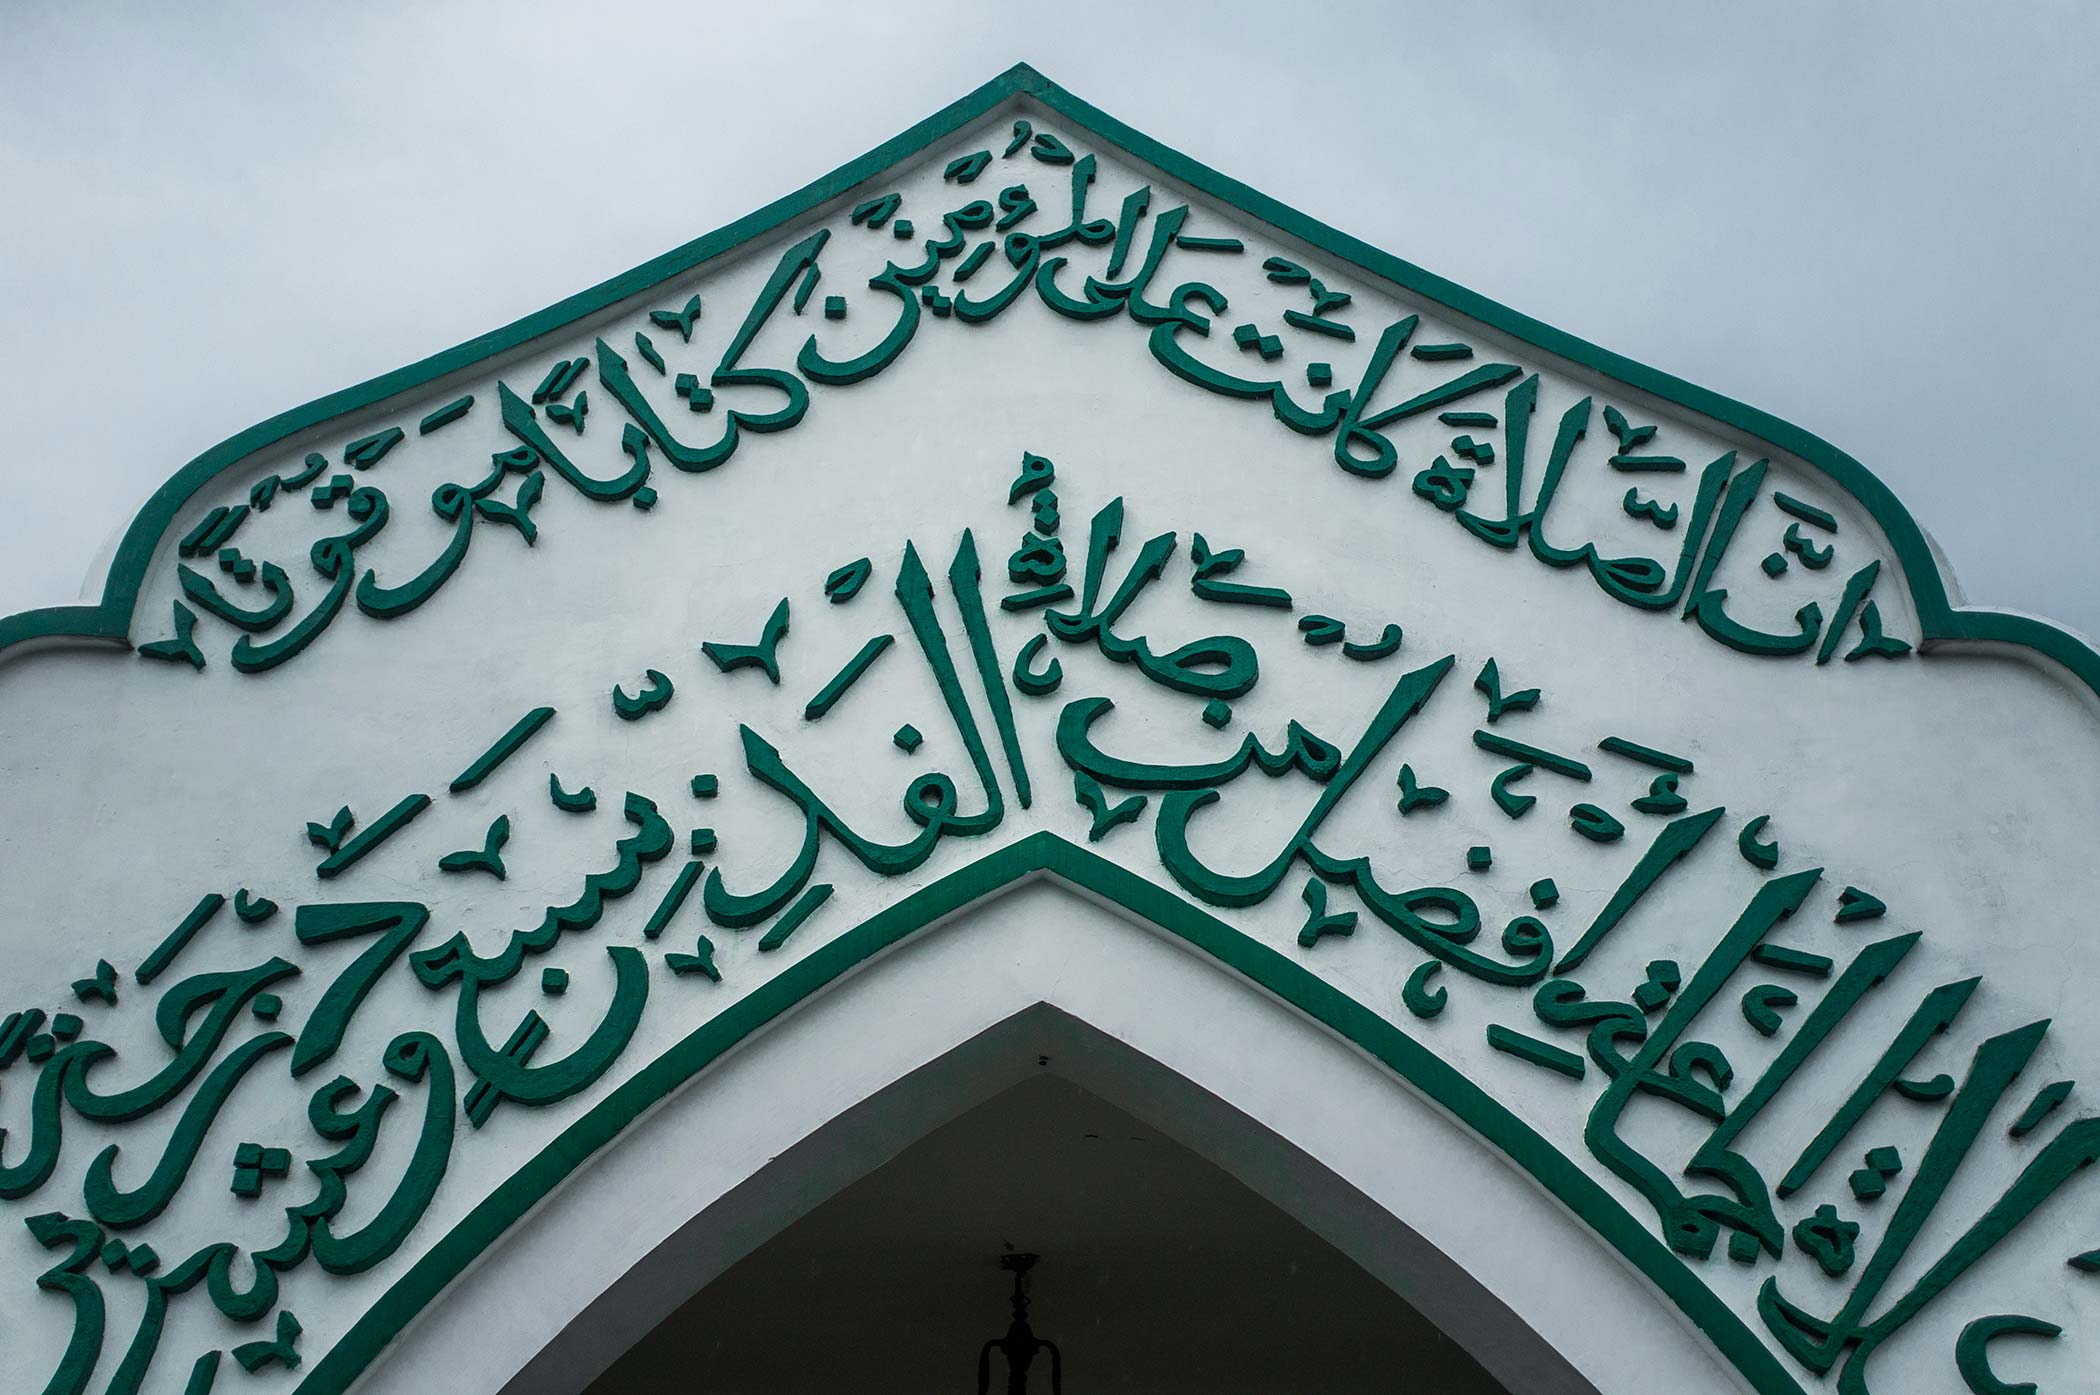 Entrance gates of the local mosque.